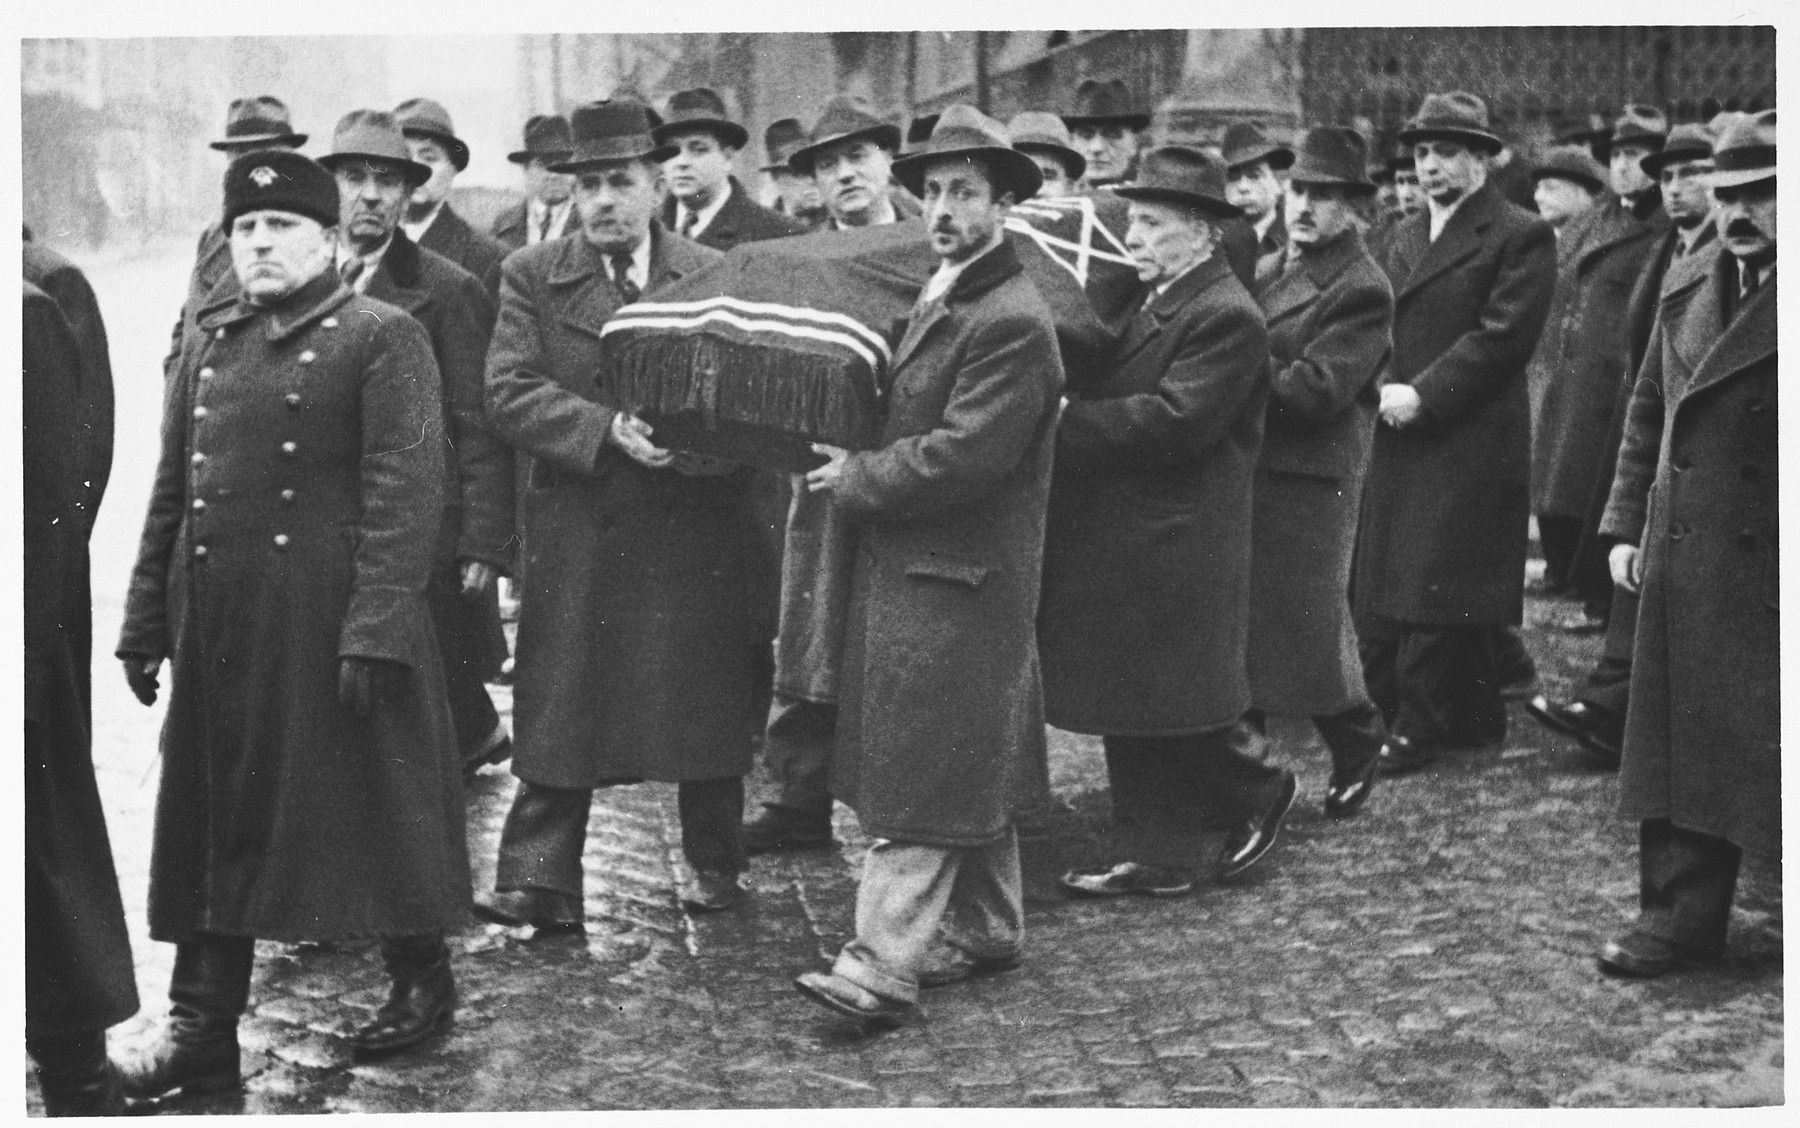 Mourners carry the coffin of Nissim Yasharoff (the donor's grandfather) during a funeral procession in Sofia.  The funeral took place a few days after the arrival of German troops in Bulgaria.